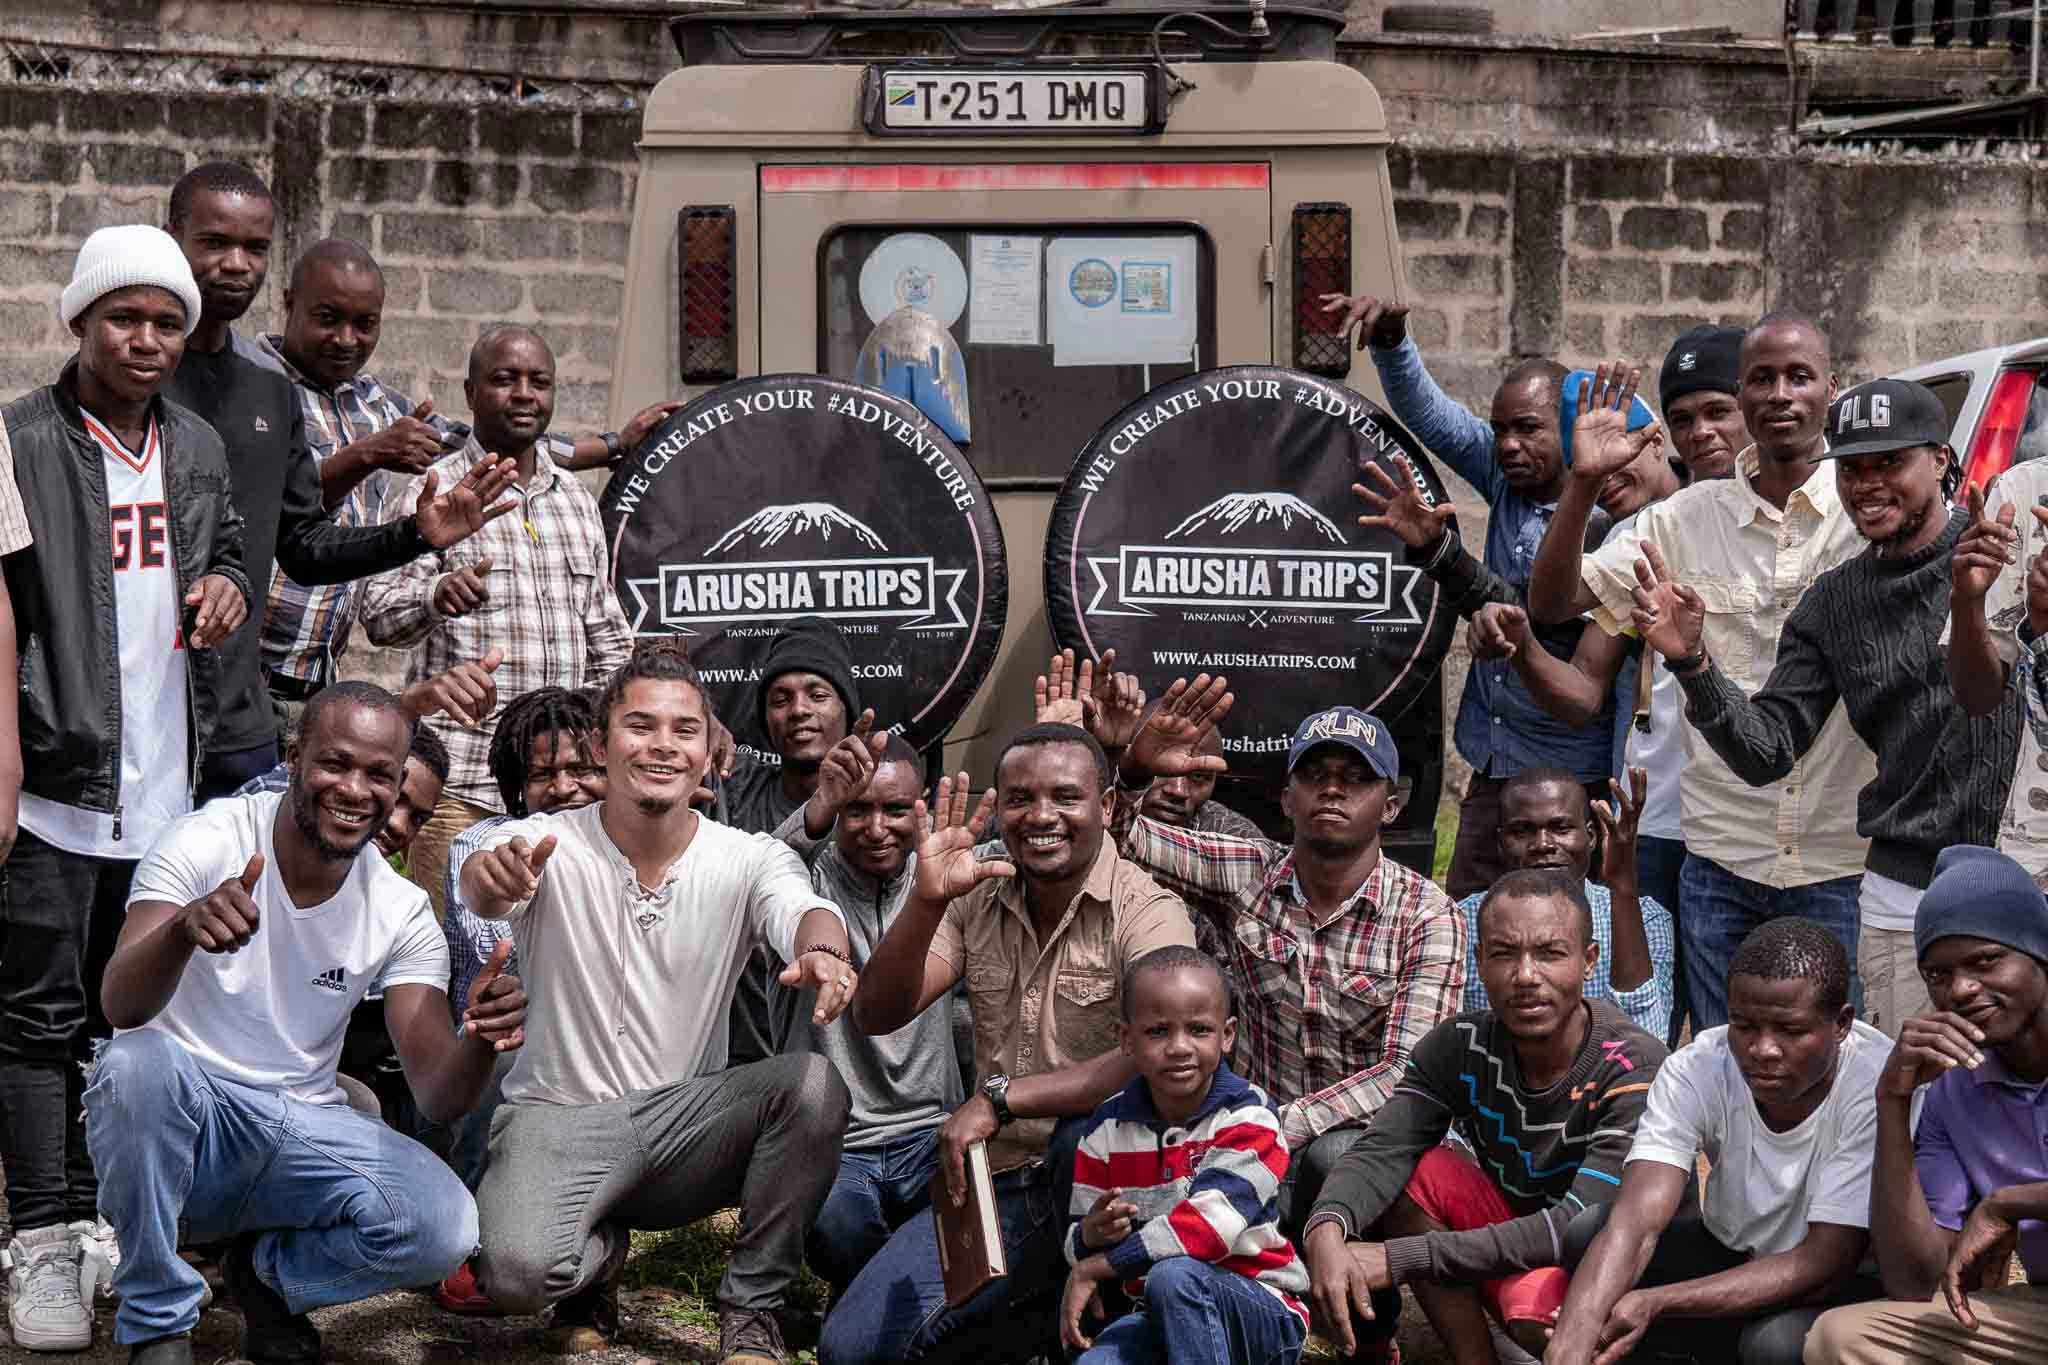 Arusha Trips about us - team